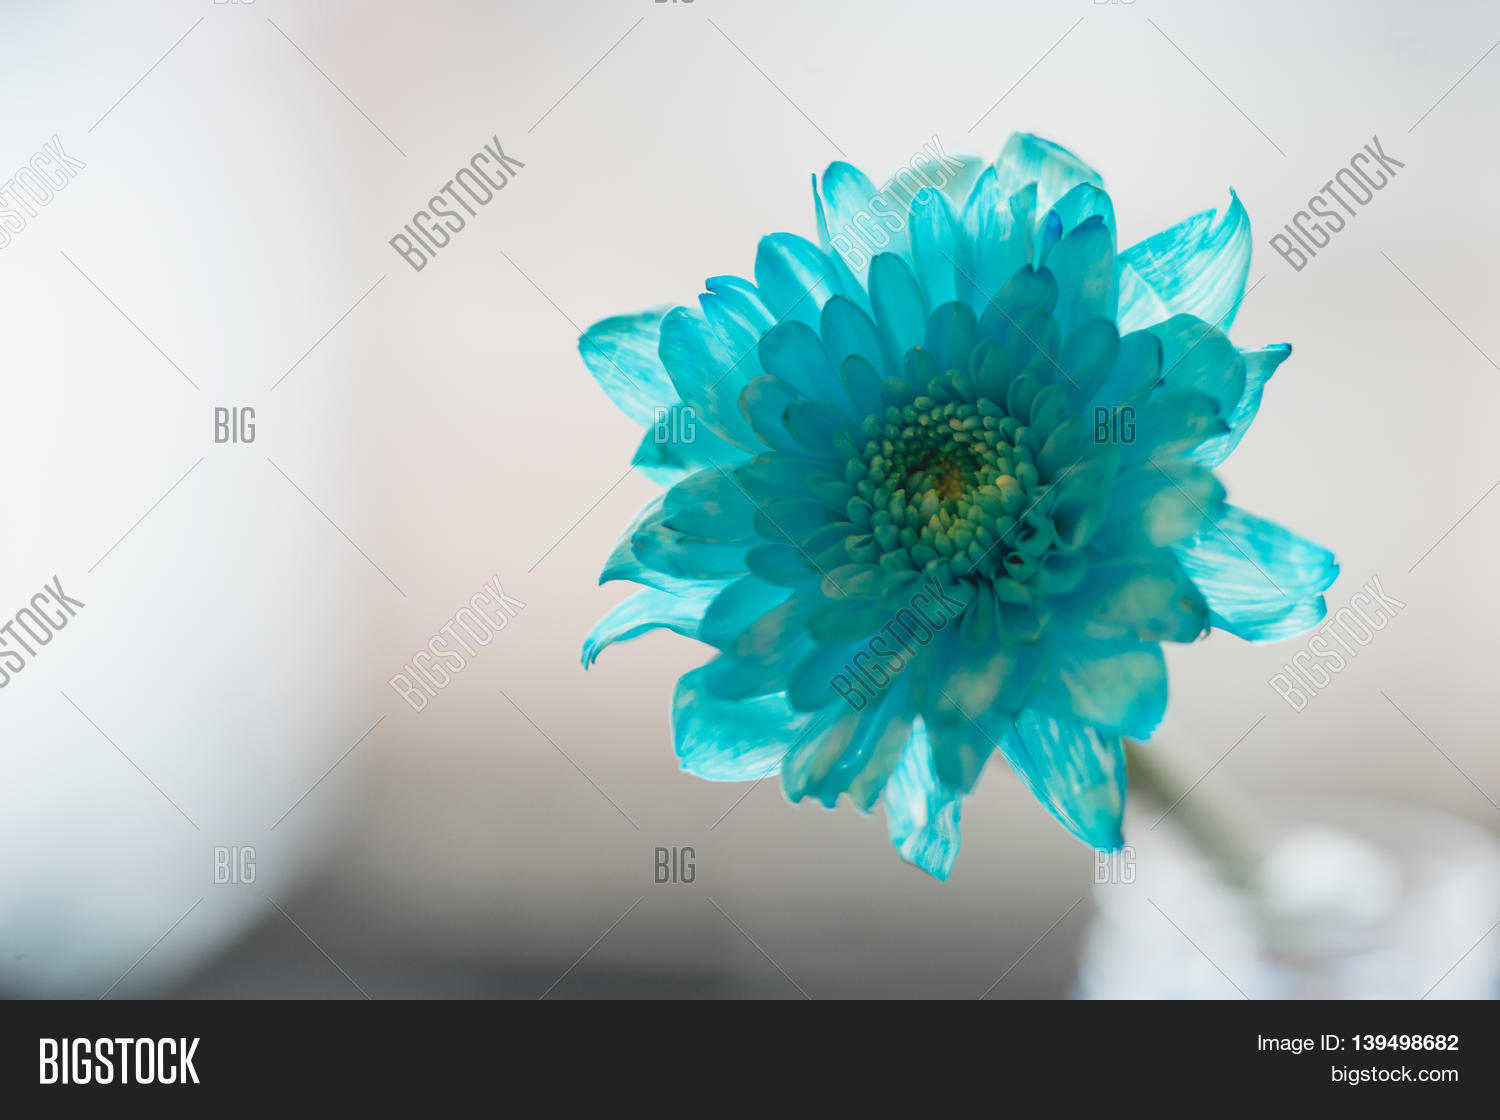 Blue daisy flower navy image photo free trial bigstock blue daisy flower navy blue daisy flower on white isolated background text word on background daisy izmirmasajfo